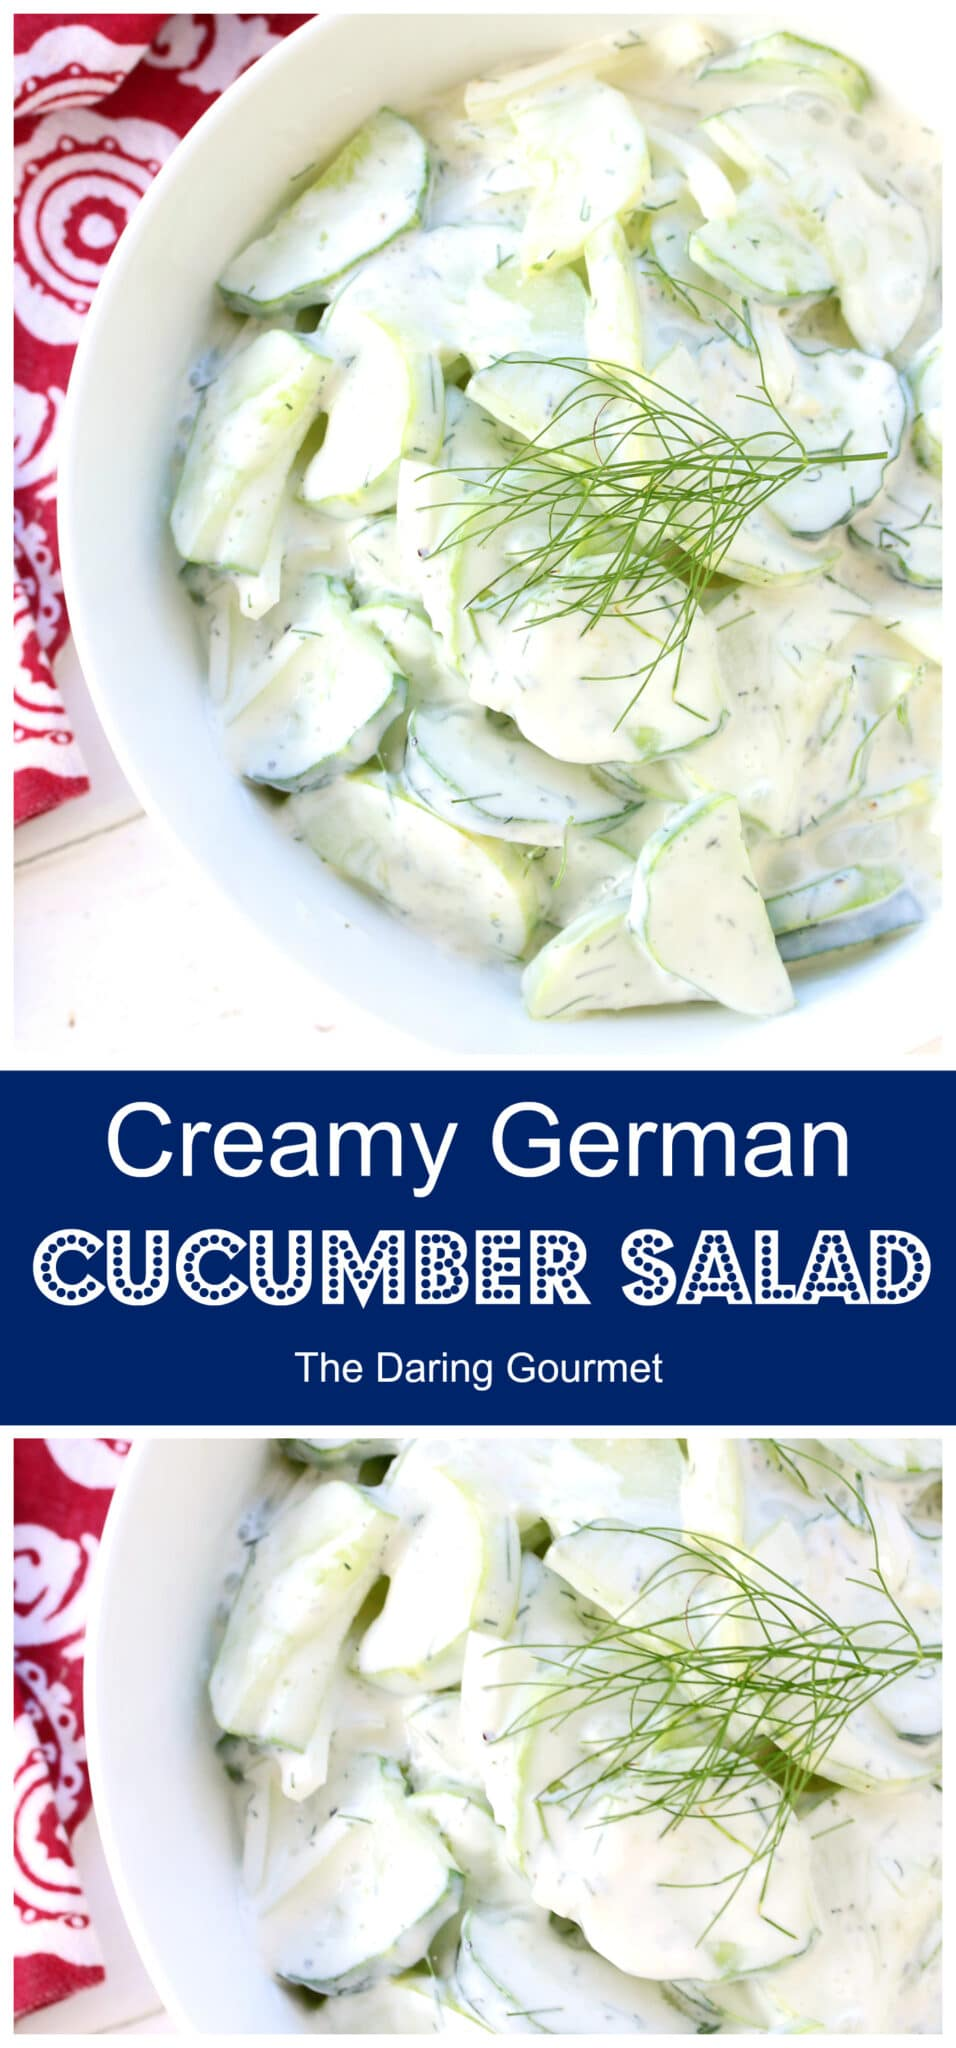 german cucumber salad recipe creamy sour cream dill onions herbs